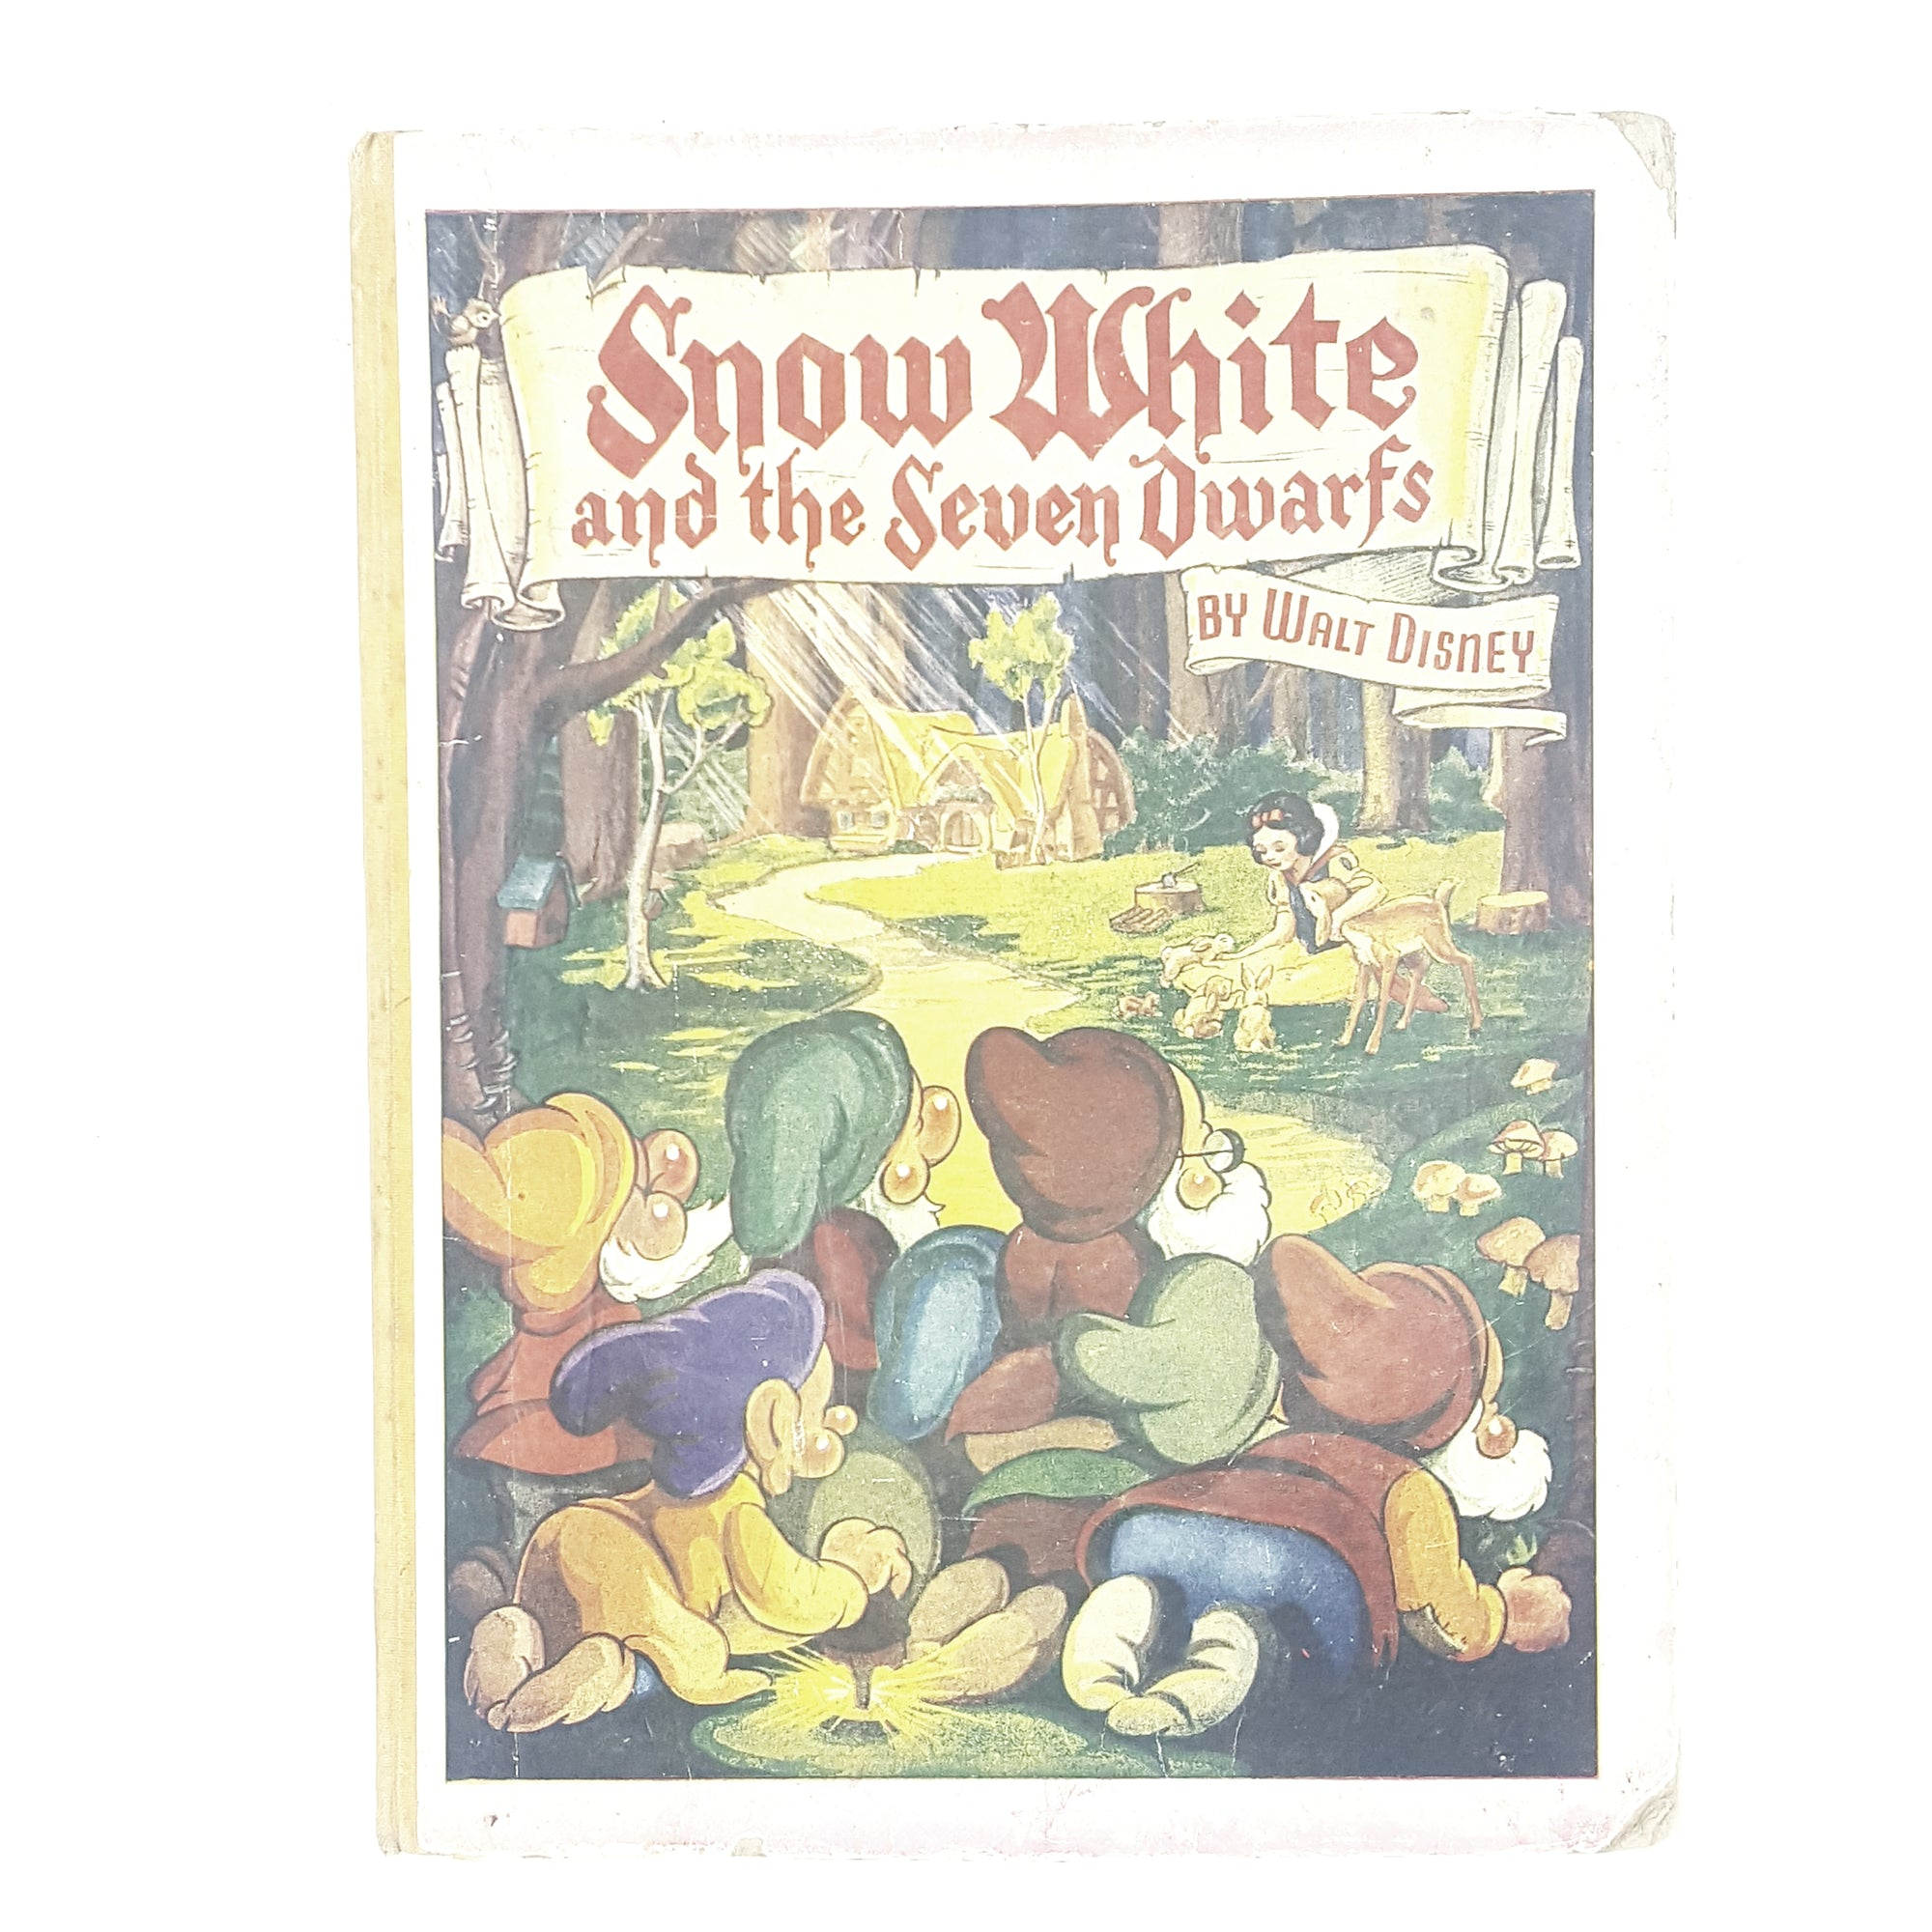 Vintage Walt Disney Snow White and the Seven Dwarfs